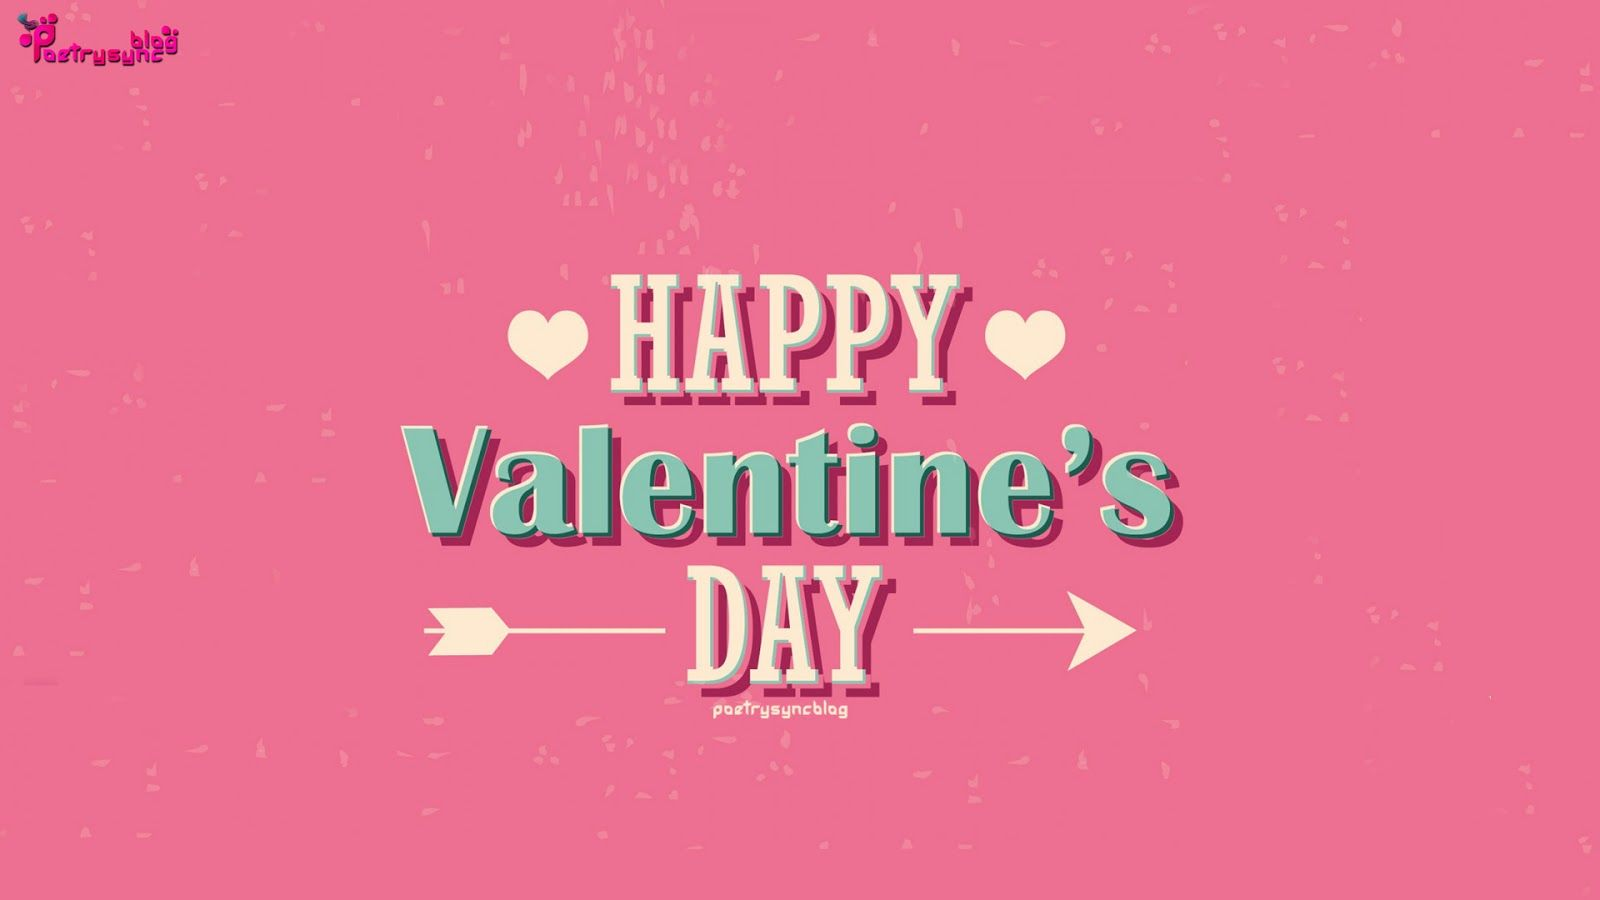 Cute Happy Valentines Day Wallpaper Pictures Photos and Images 1600x900